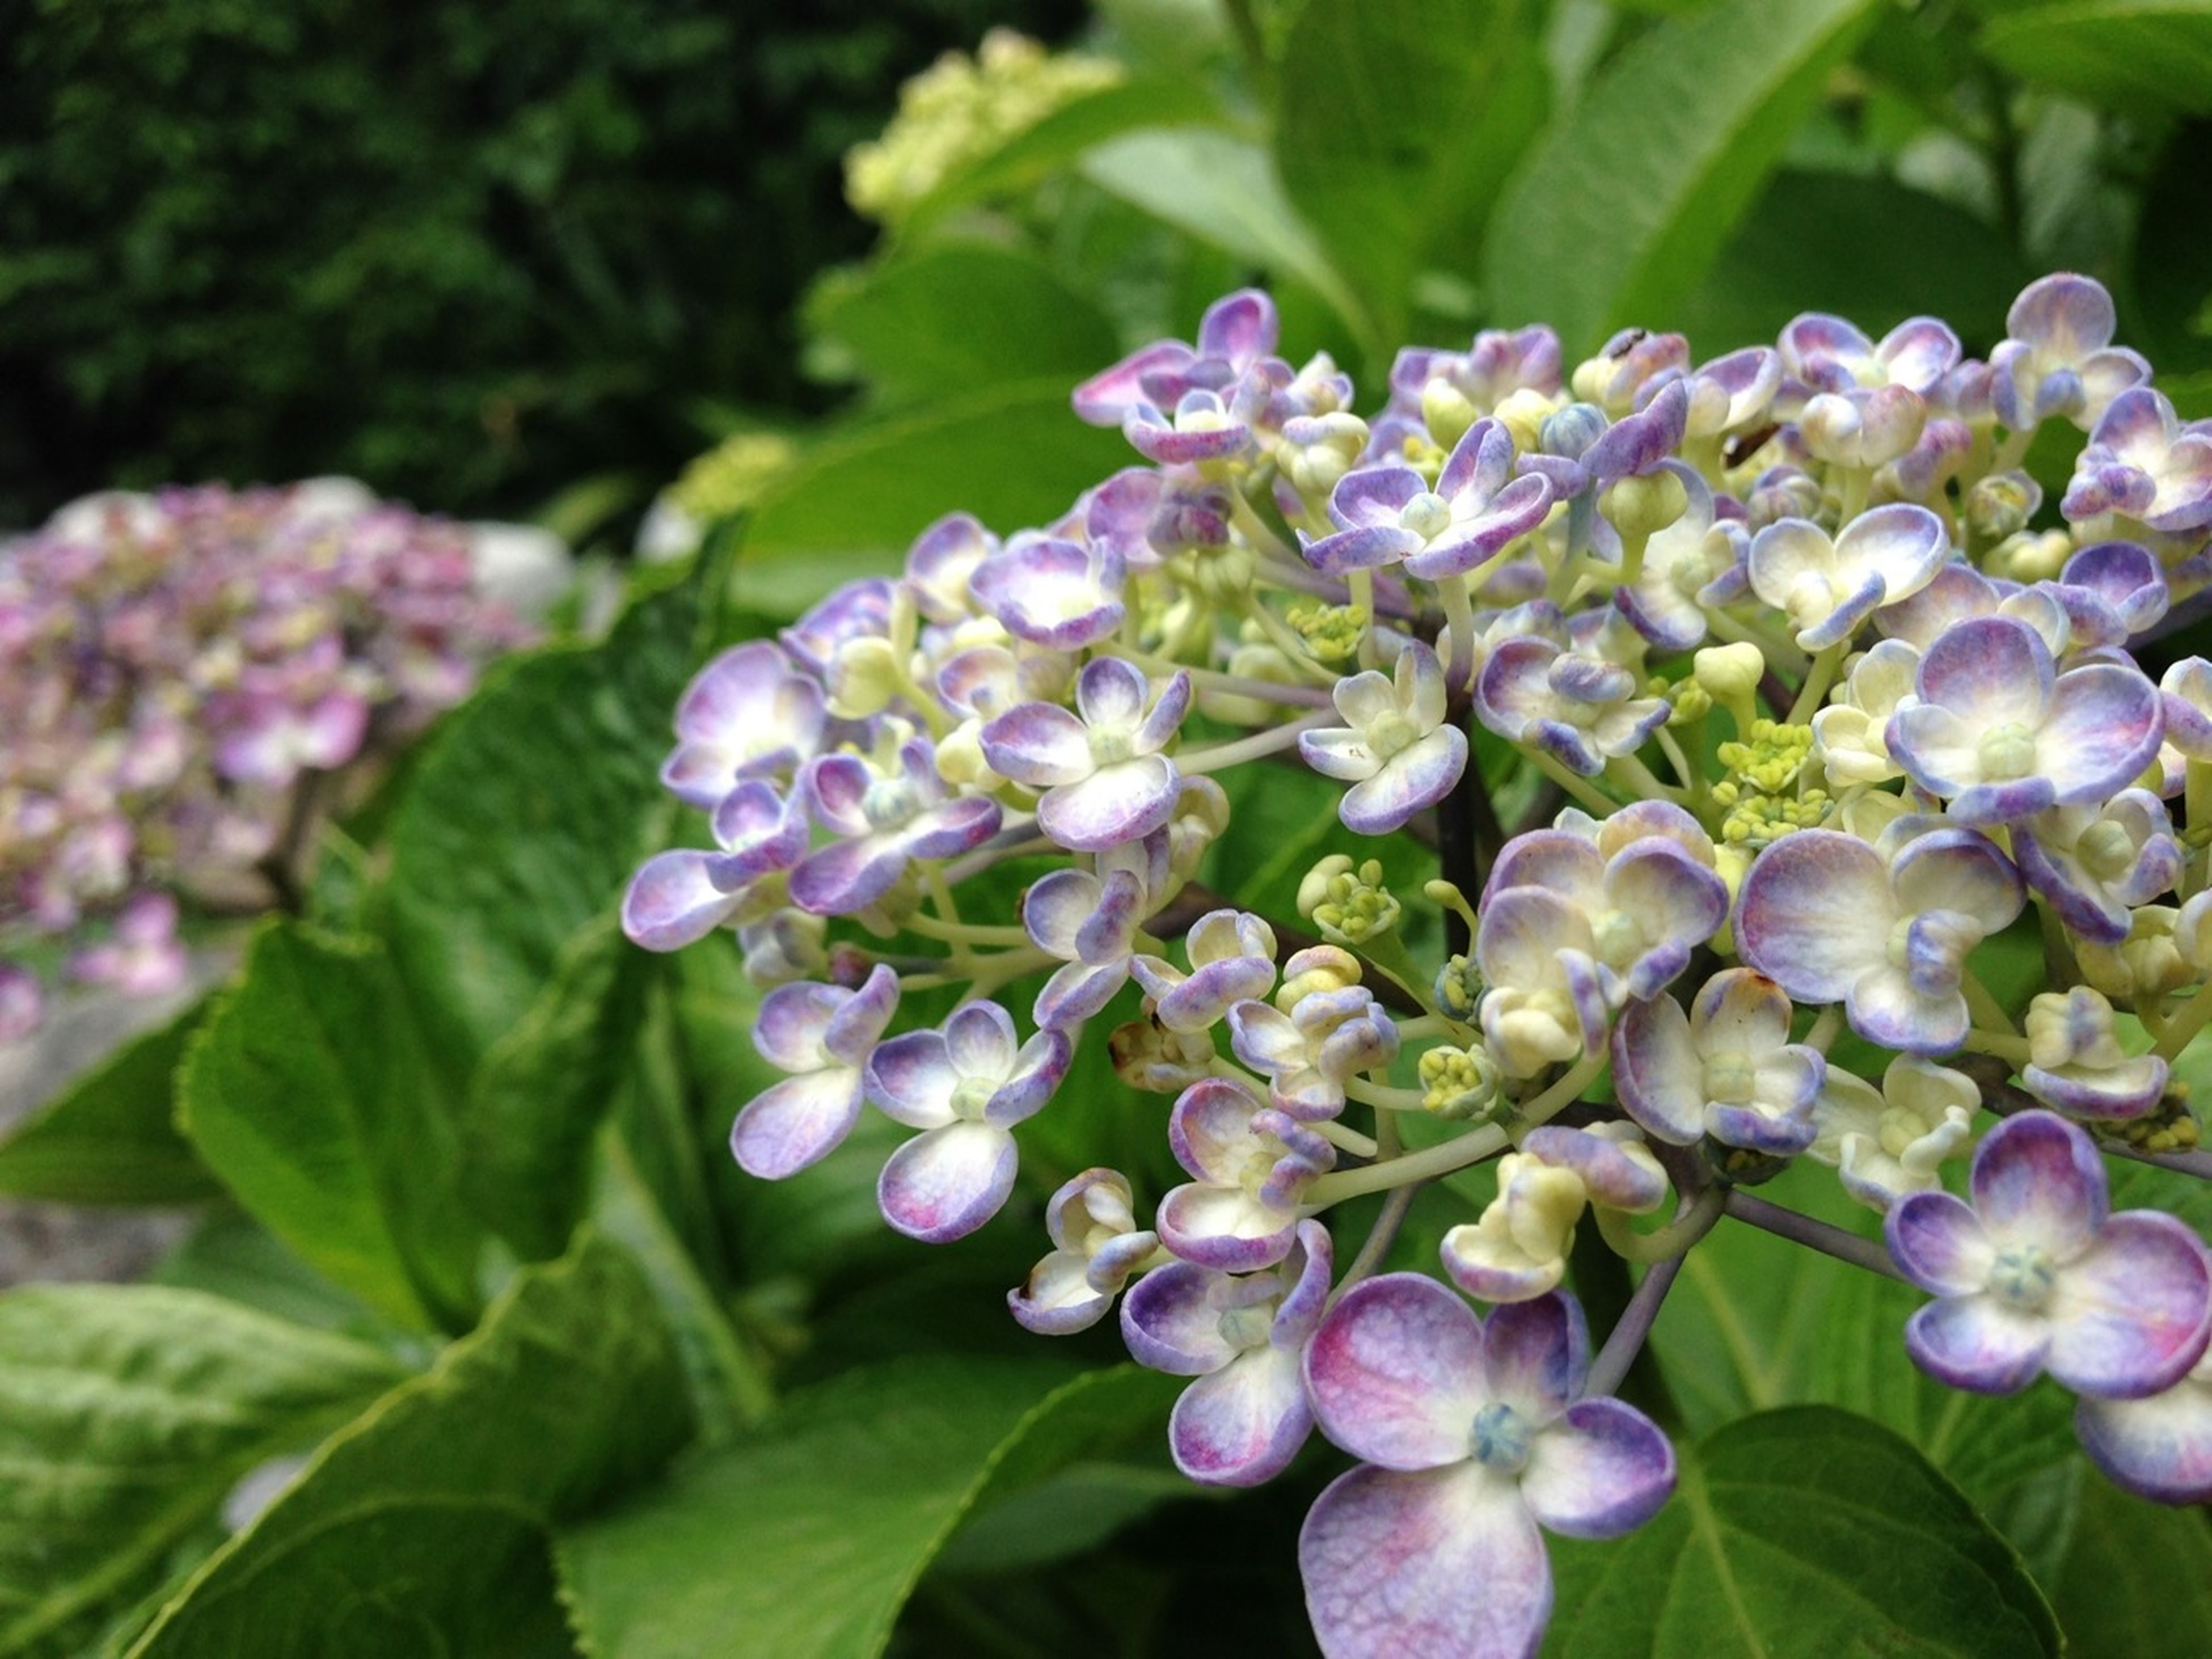 flower, freshness, purple, growth, fragility, petal, beauty in nature, plant, flower head, close-up, blooming, nature, leaf, focus on foreground, in bloom, park - man made space, green color, hydrangea, outdoors, selective focus